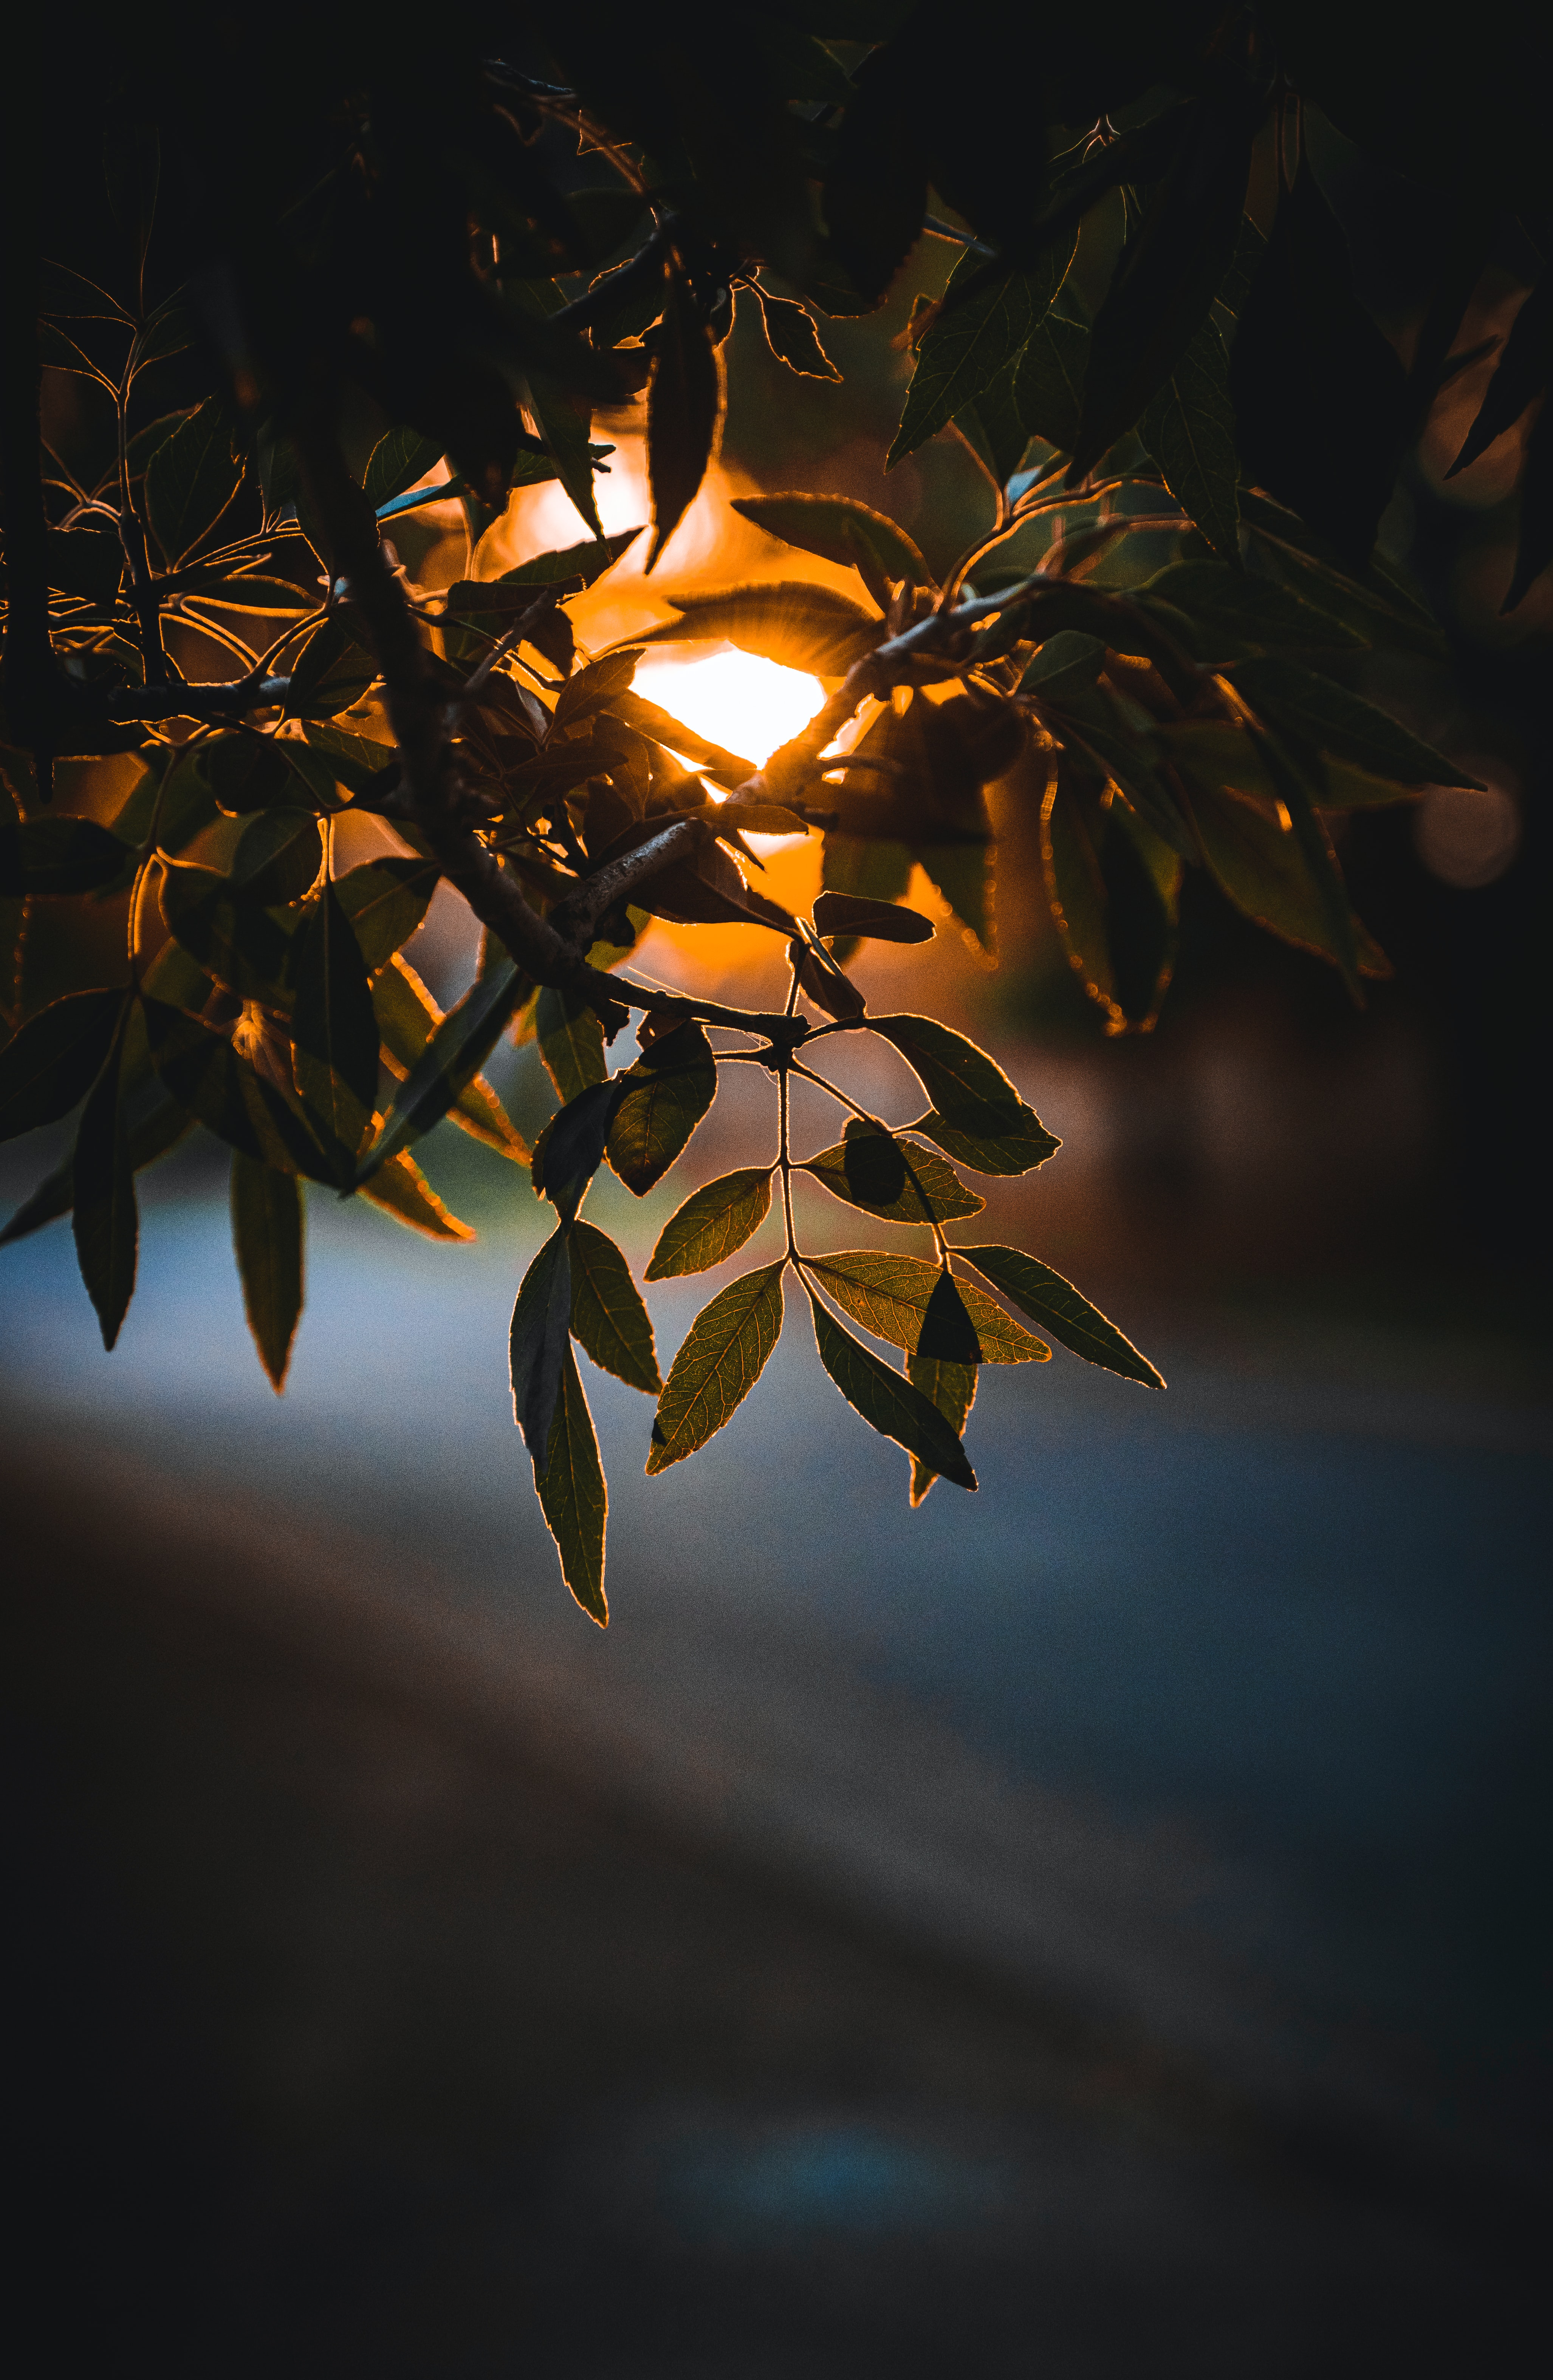 137771 download wallpaper Nature, Leaves, Branch, Glow, Sun screensavers and pictures for free